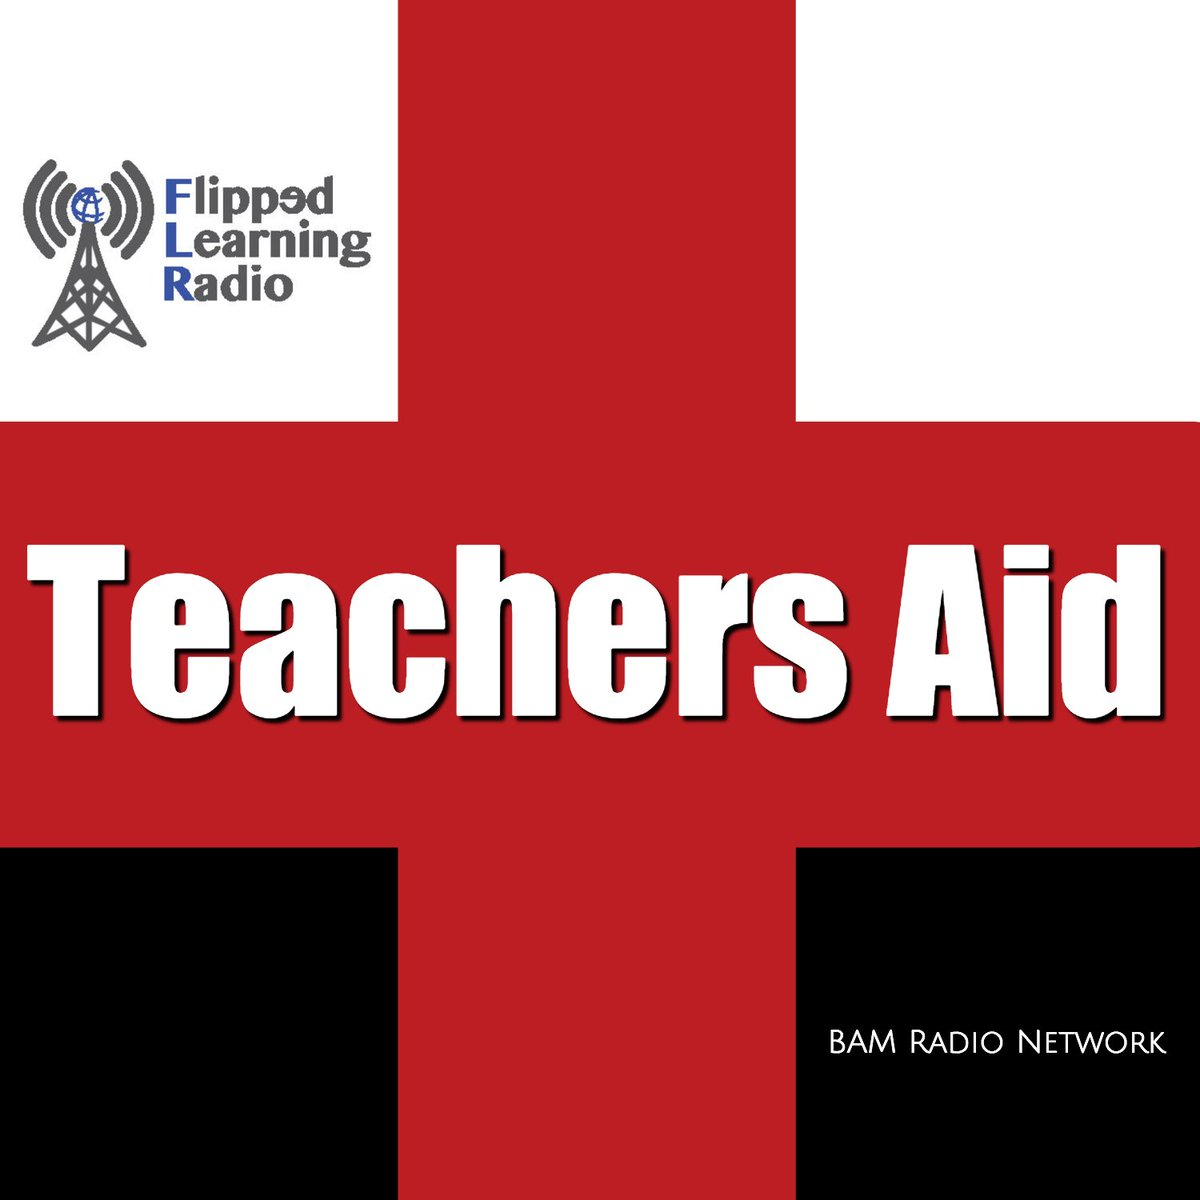 teaching aid Teaching aid definition, material used by a teacher to supplement classroom instruction or to stimulate the interest of students see more.